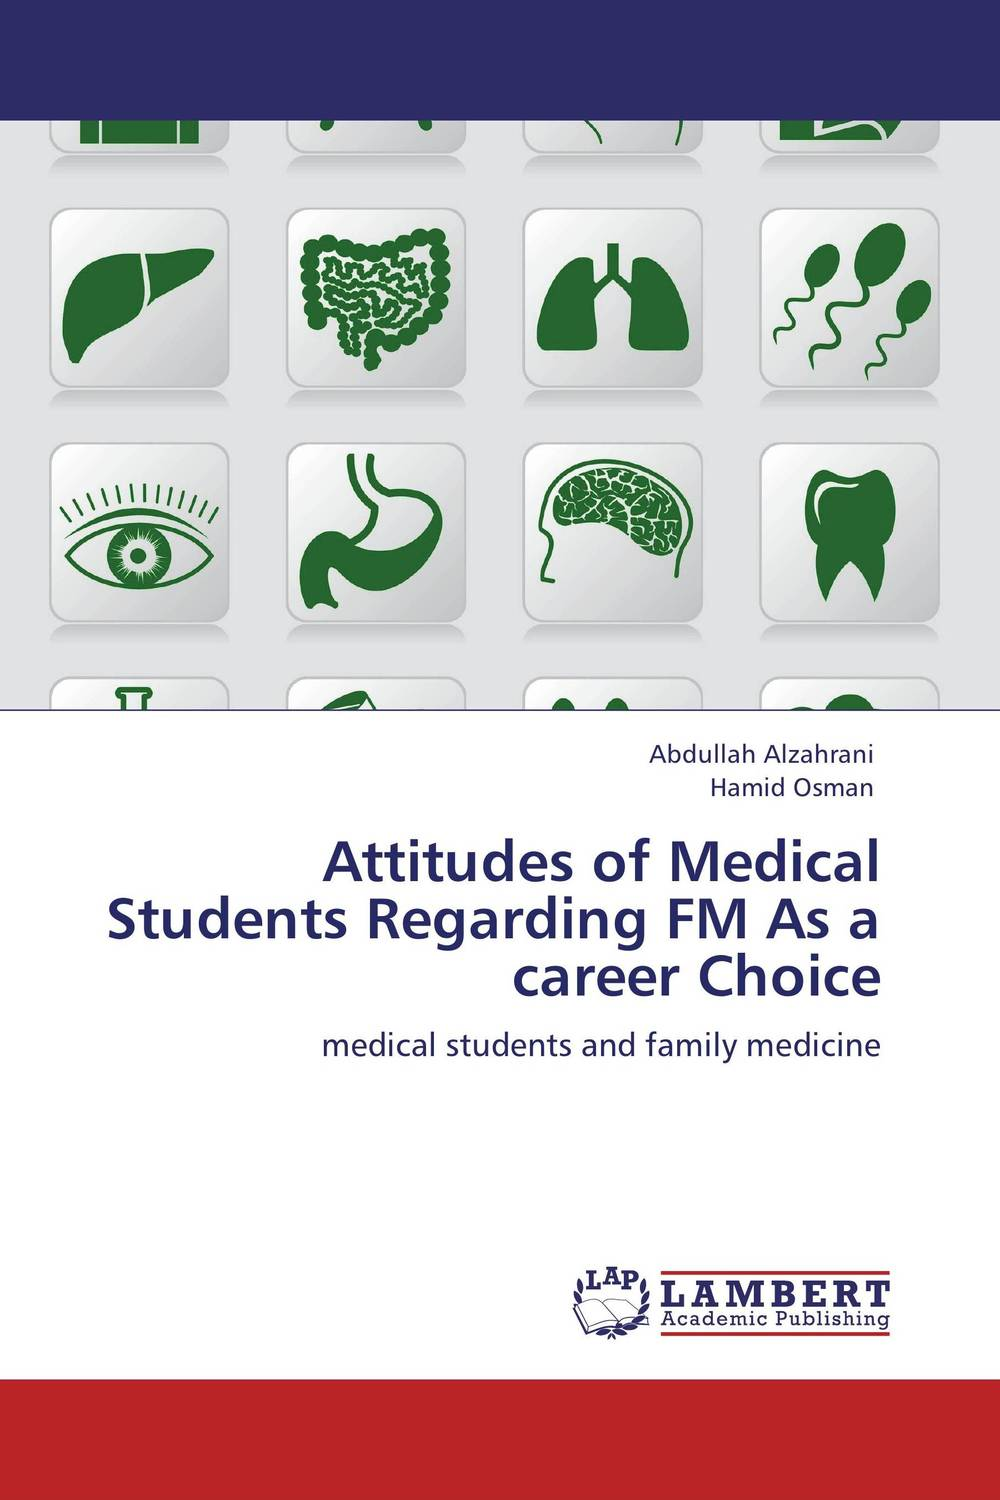 Attitudes of Medical Students Regarding FM As a career Choice abdullah alzahrani and hamid osman attitudes of medical students regarding fm as a career choice